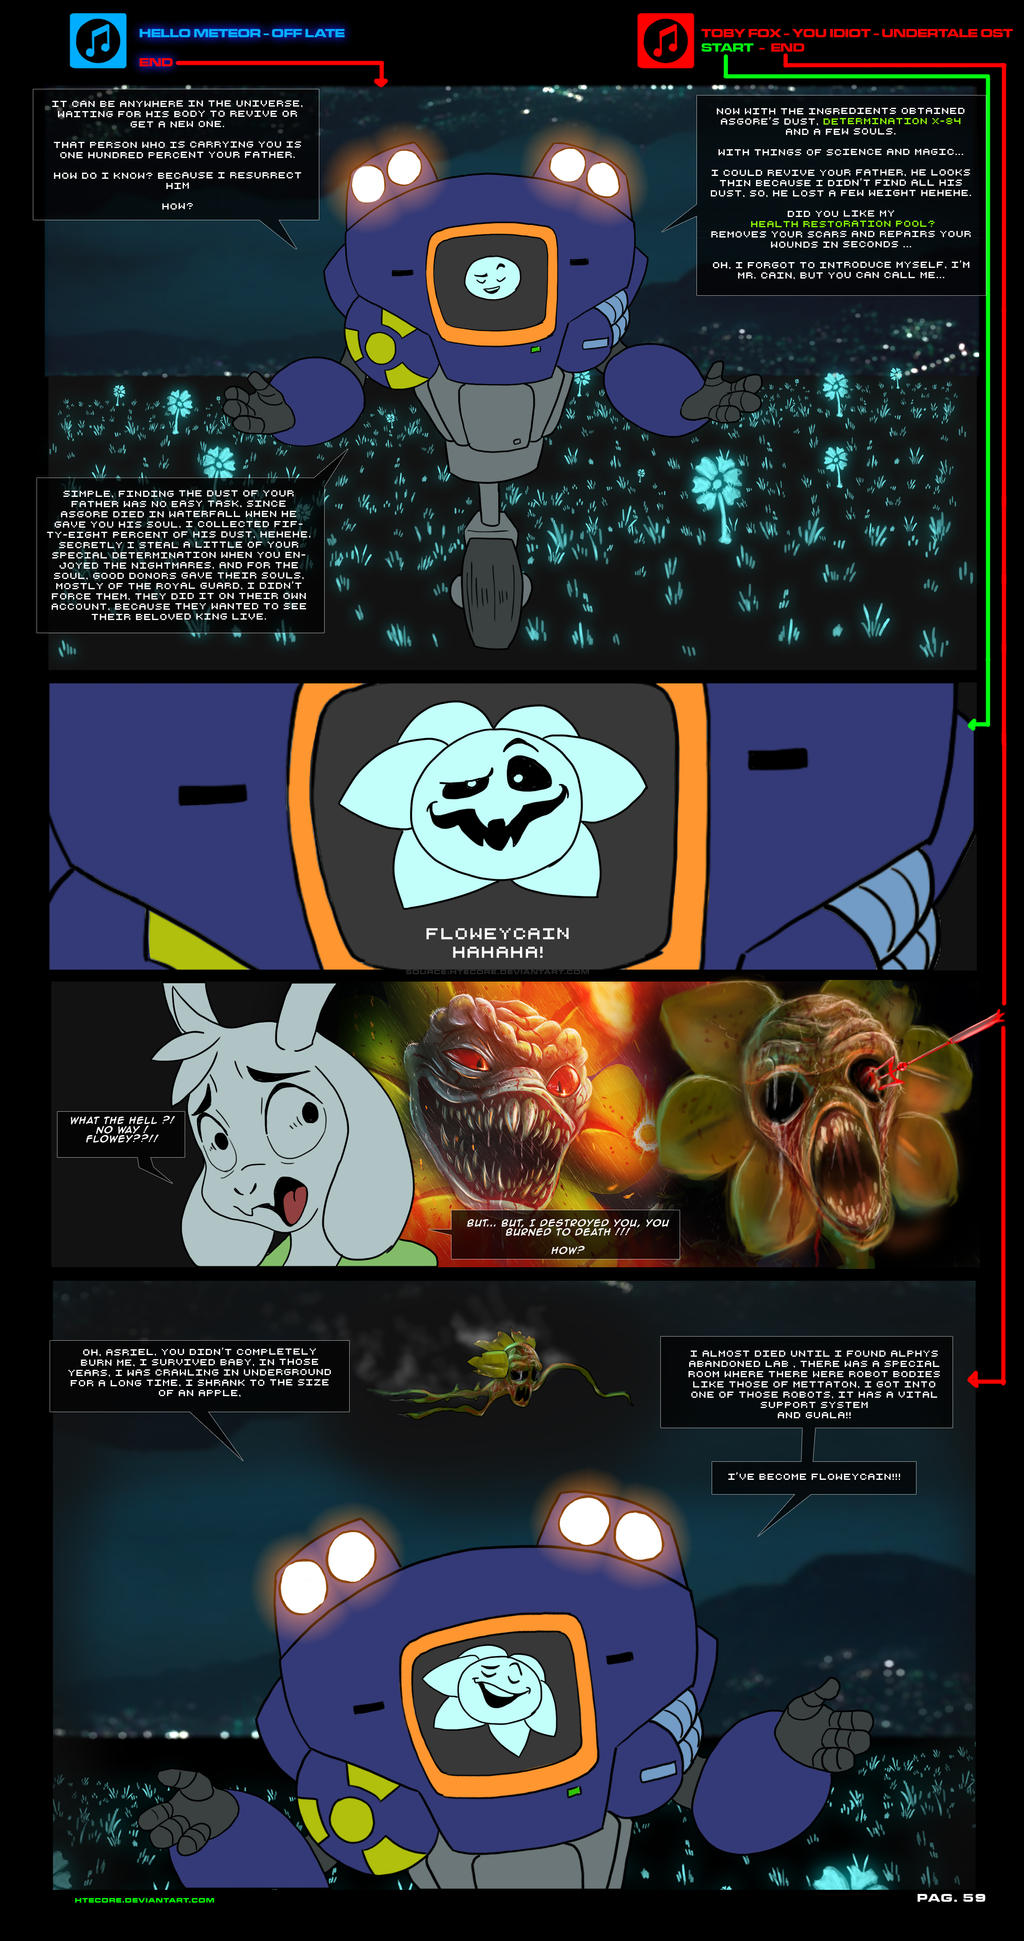 asriel synth undertale au comic pag 59 by htecore on